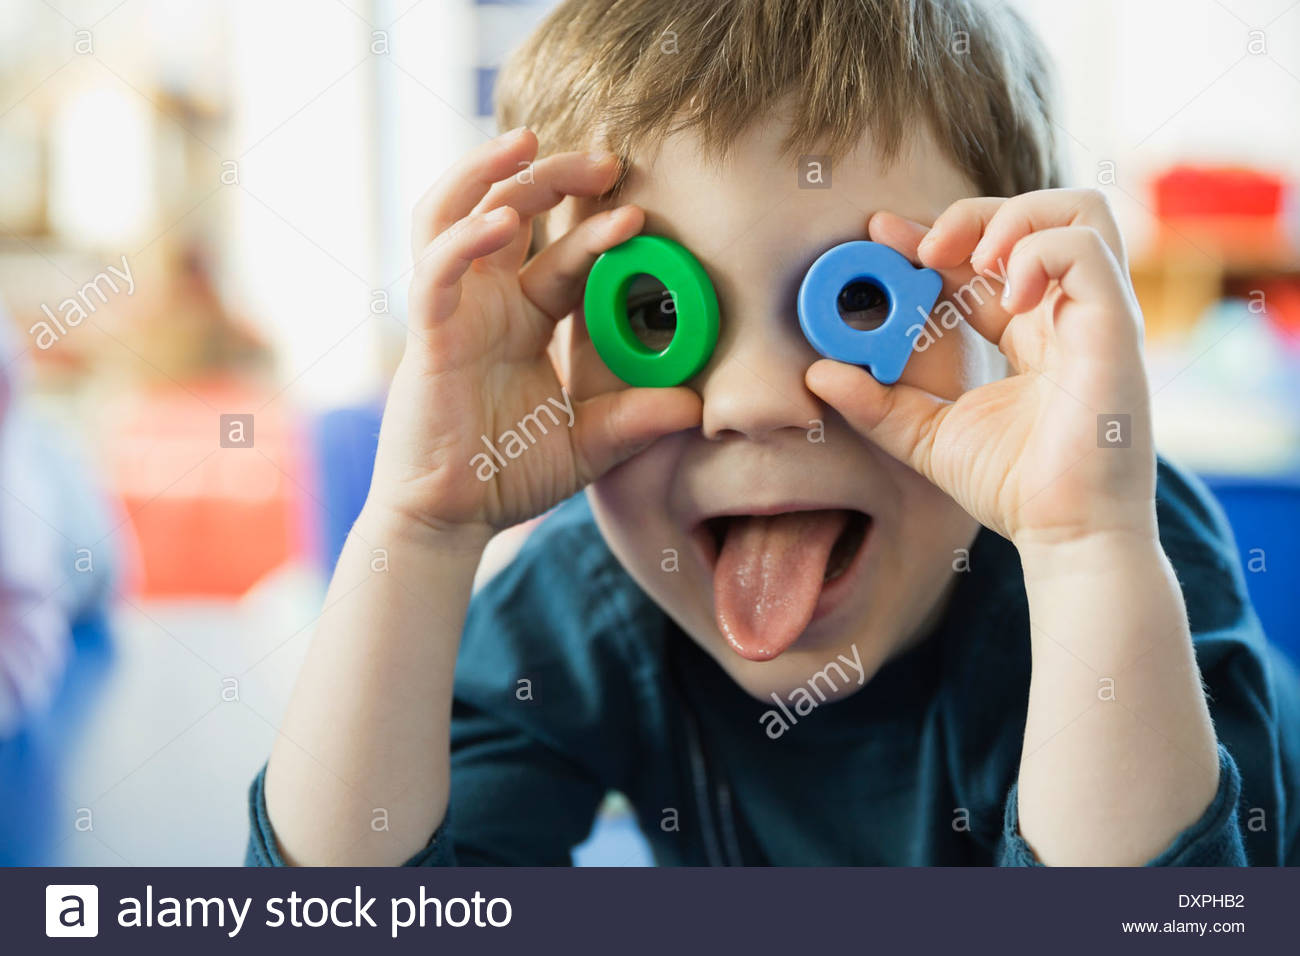 Playful boy making faces avec des lettres Photo Stock